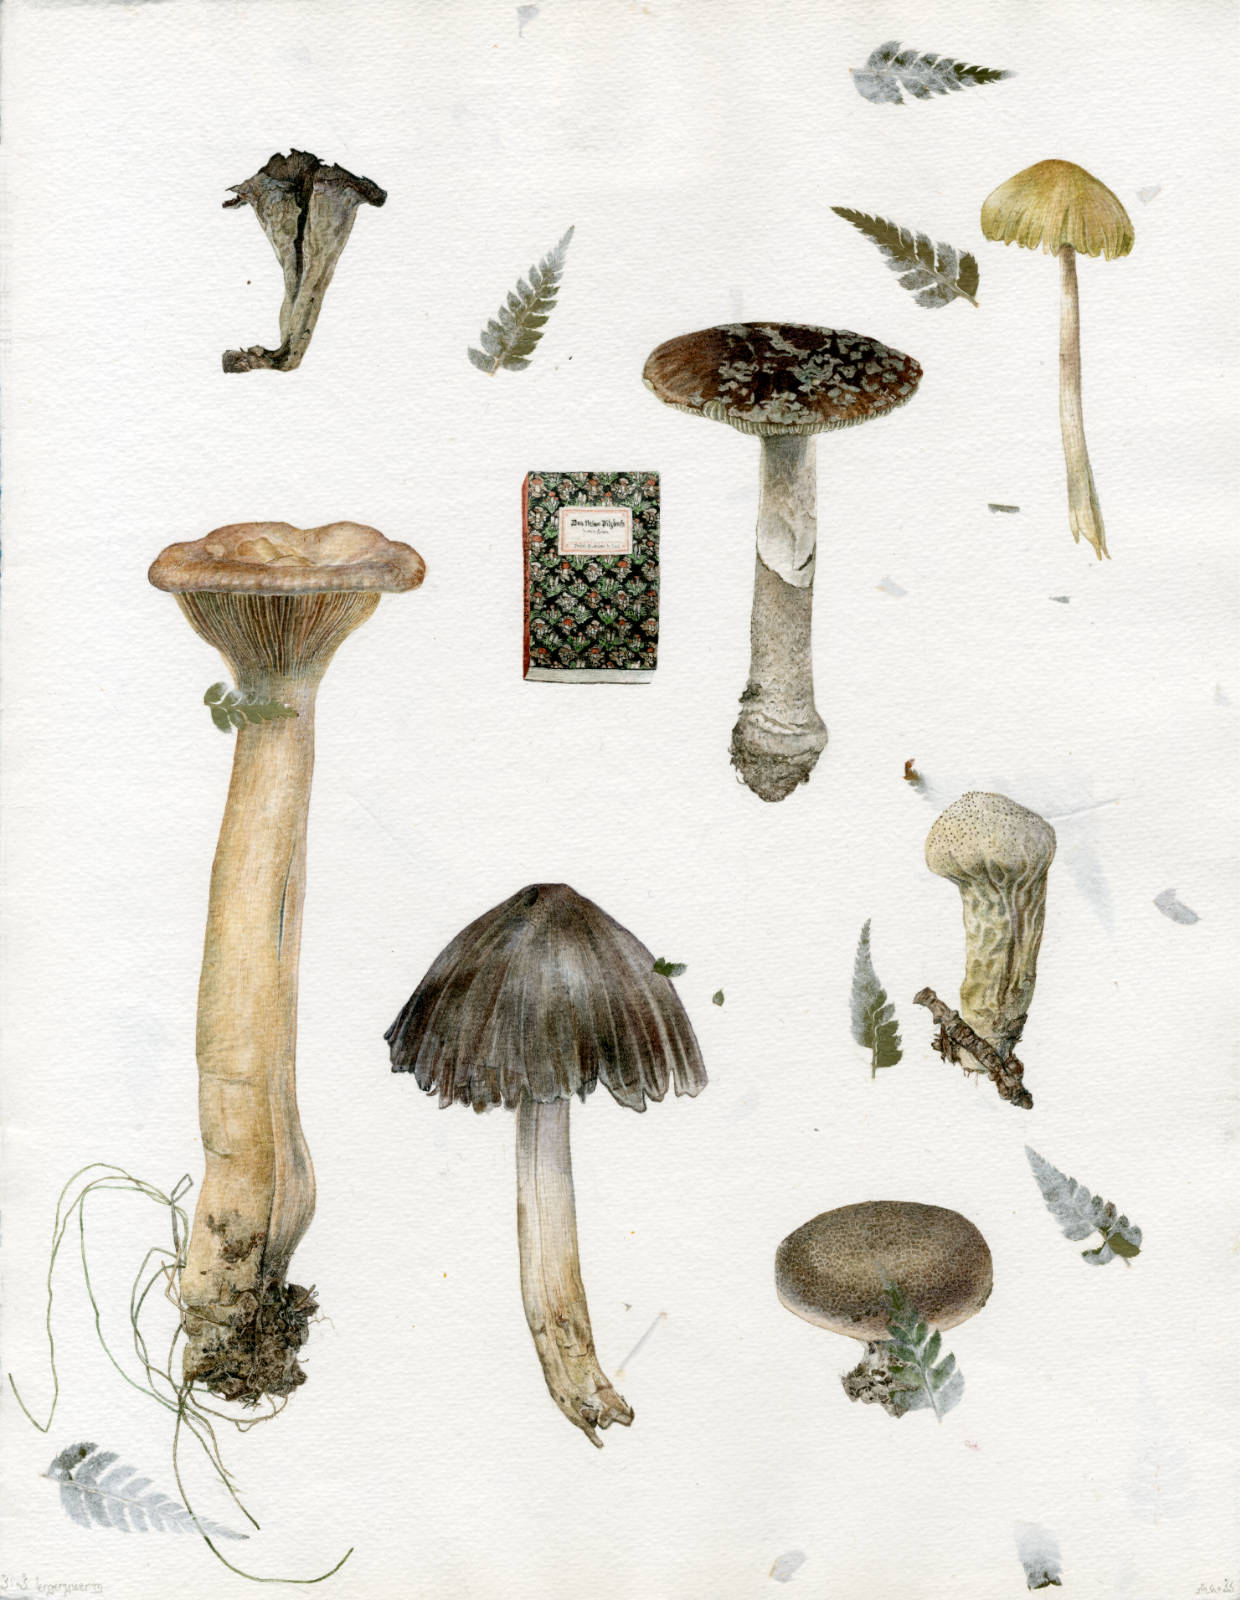 Watercolour study of various mushrooms such as craterellus cornucopioides, (vulgar black chanterelle) lactarius (vulgar milk-caps) amanita mascara (vulgar fly agaric) lycoperdon perlatum (vulgar puffball) and two unidentified others